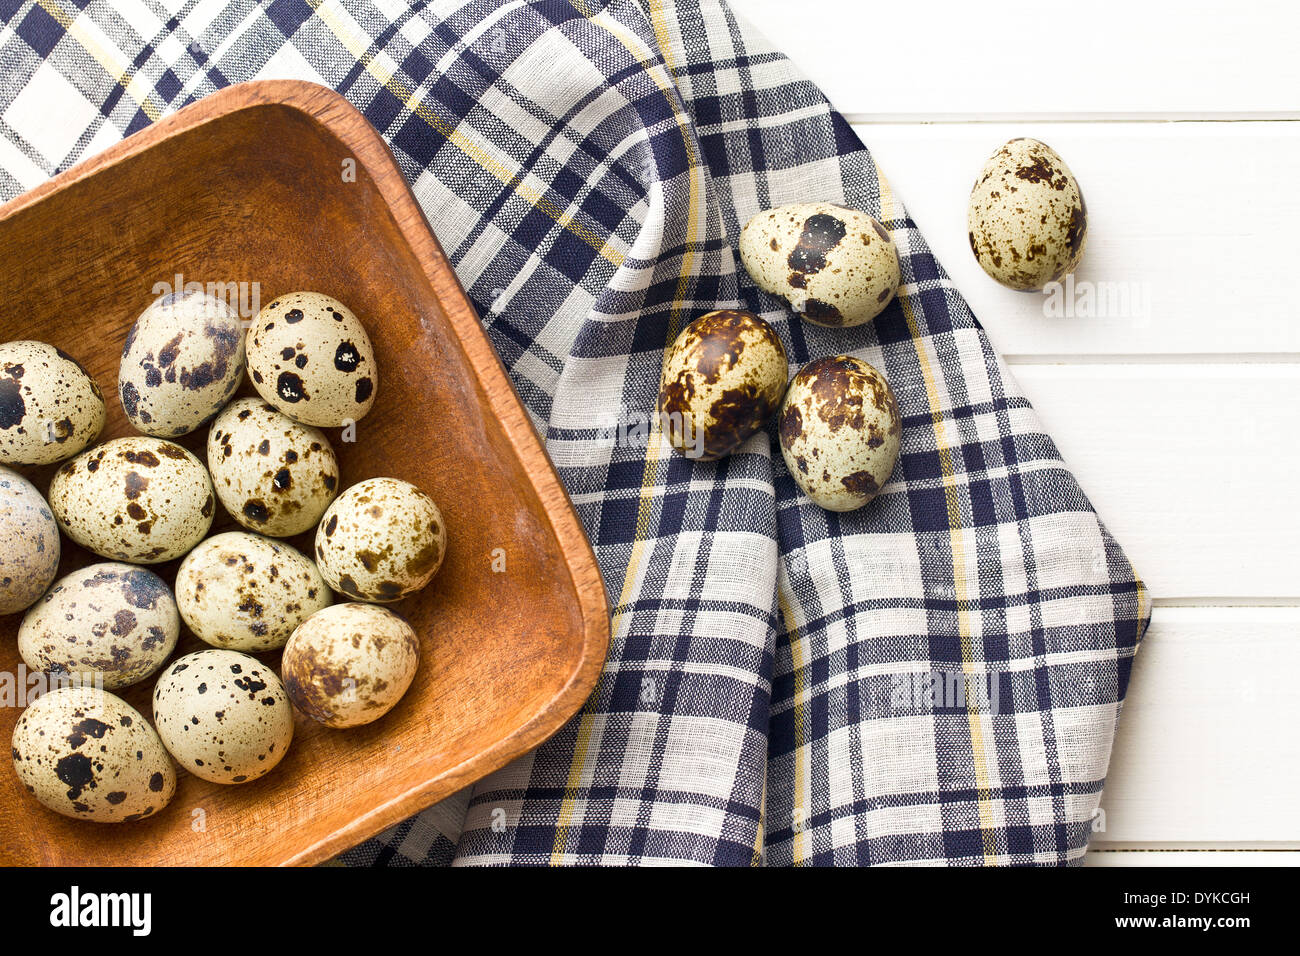 Quail eggs in wooden bowl on kitchen table - Stock Image